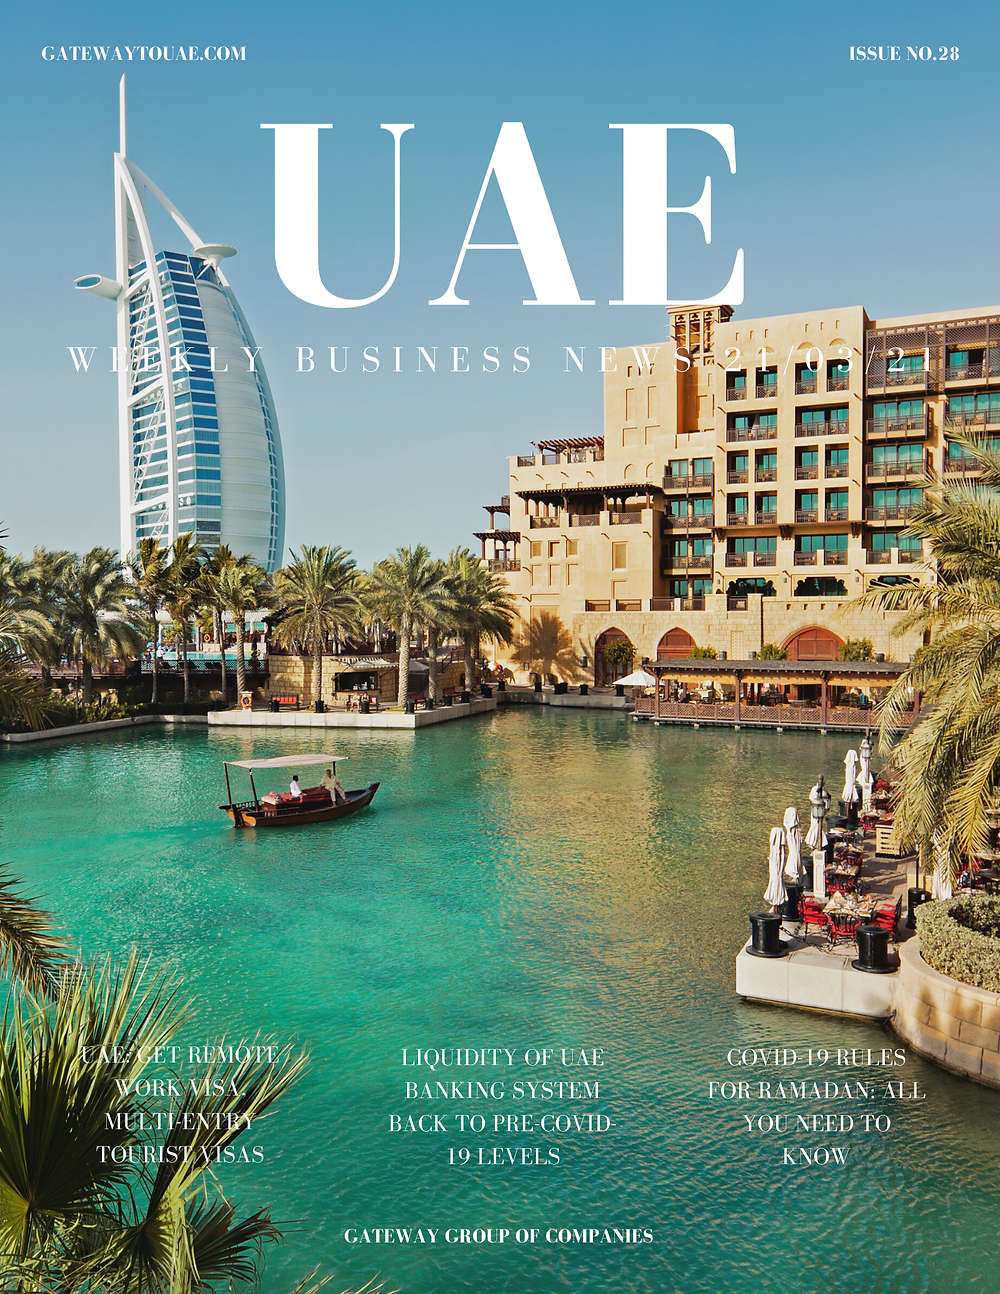 UAE weekly business news headlines 21st March 2021 Issue 28 Gateway Group Of Companies Abu Dhabi Dubai weekly magazine company formation business setup local sponsor service agent visas company formation authority